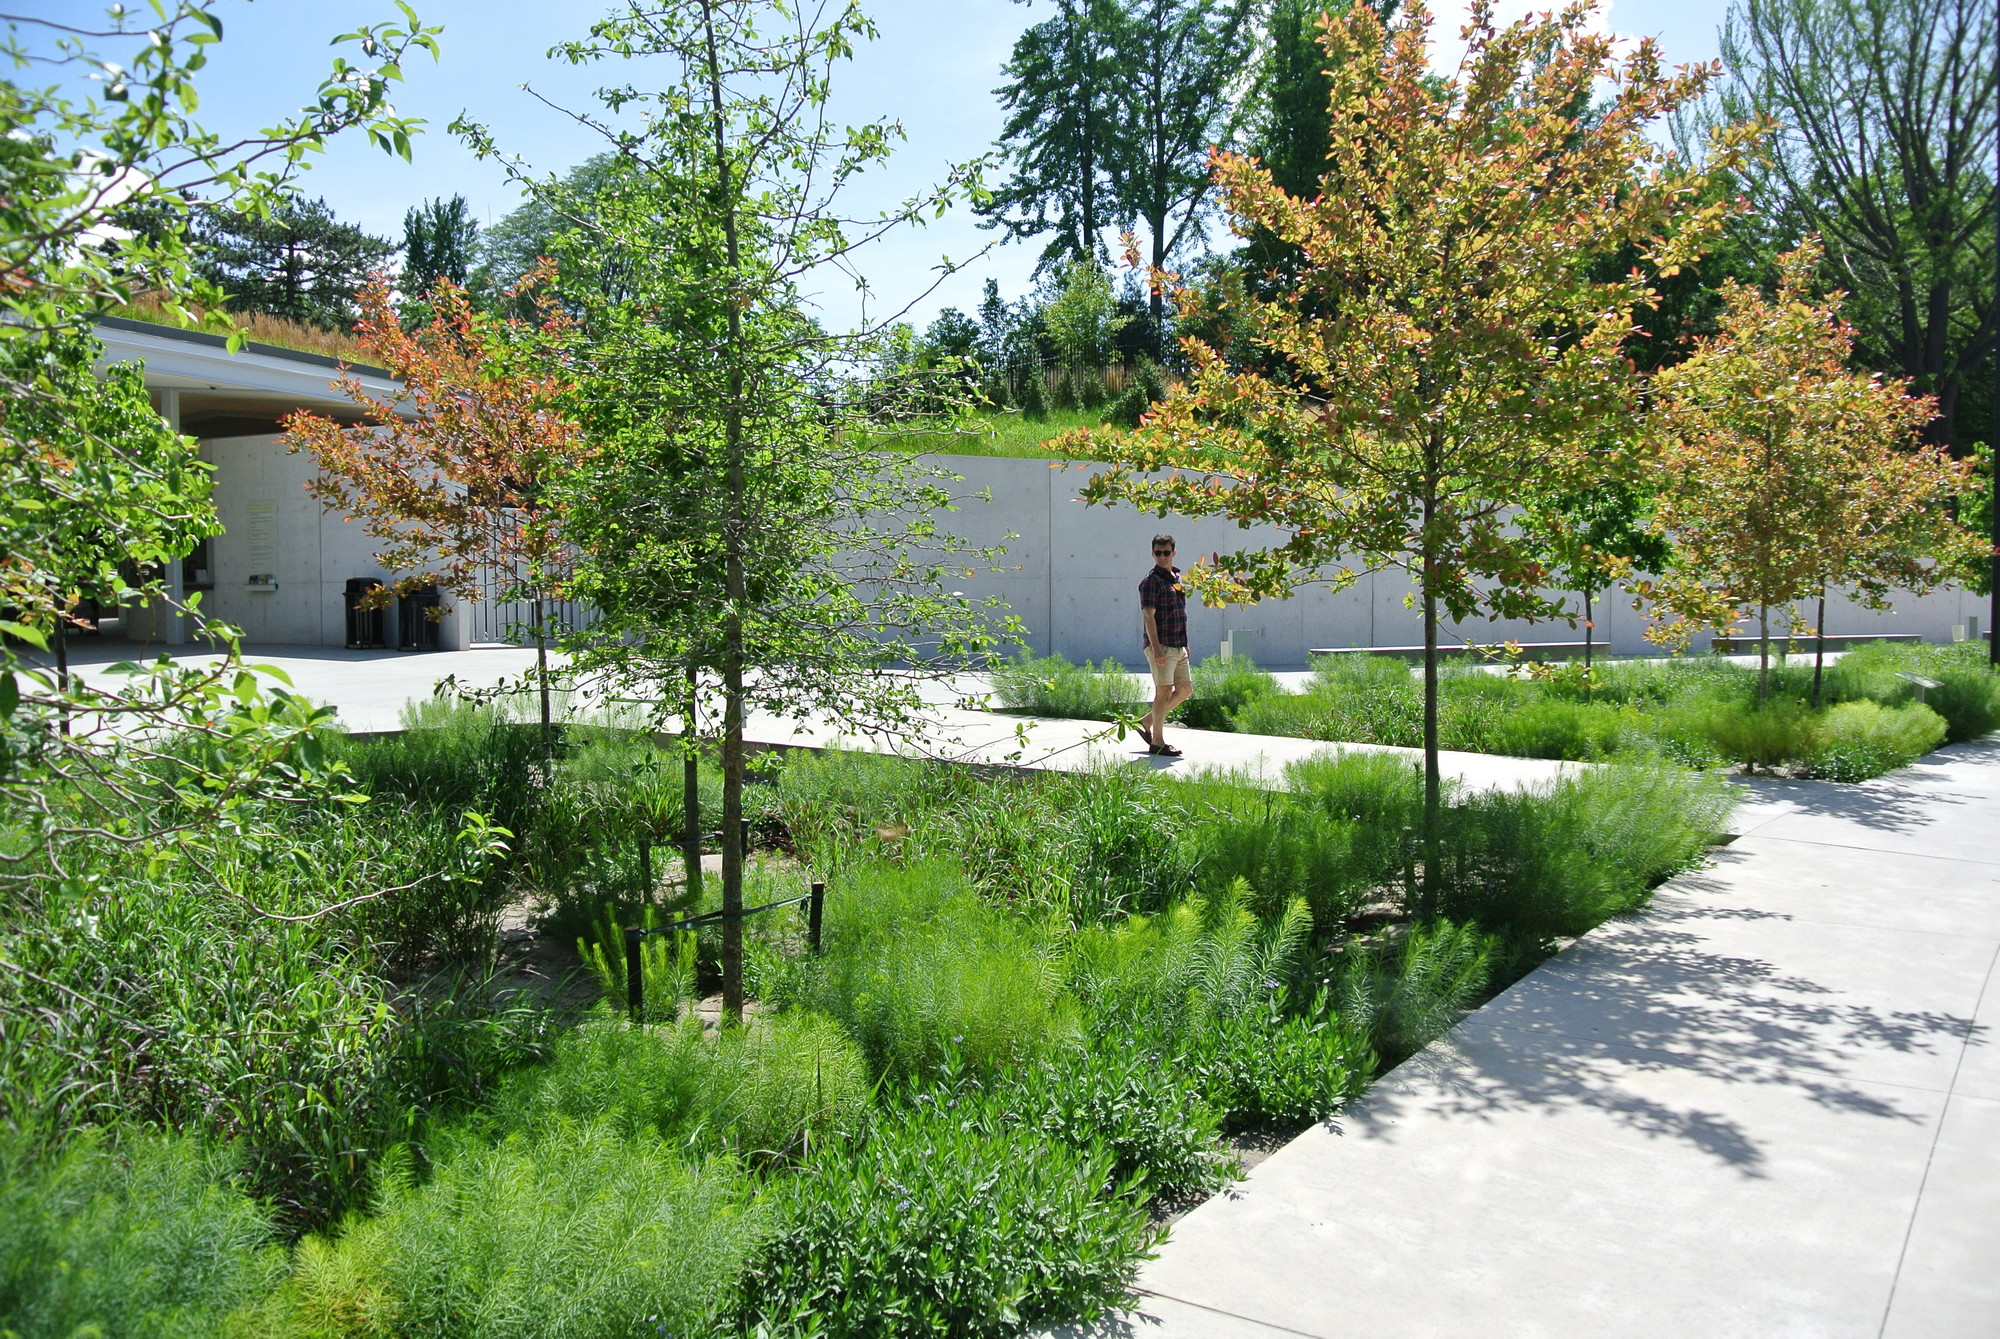 Landscaped Gardens Facility: Gallery Of Brooklyn Botanic Garden Visitor Center / Weiss